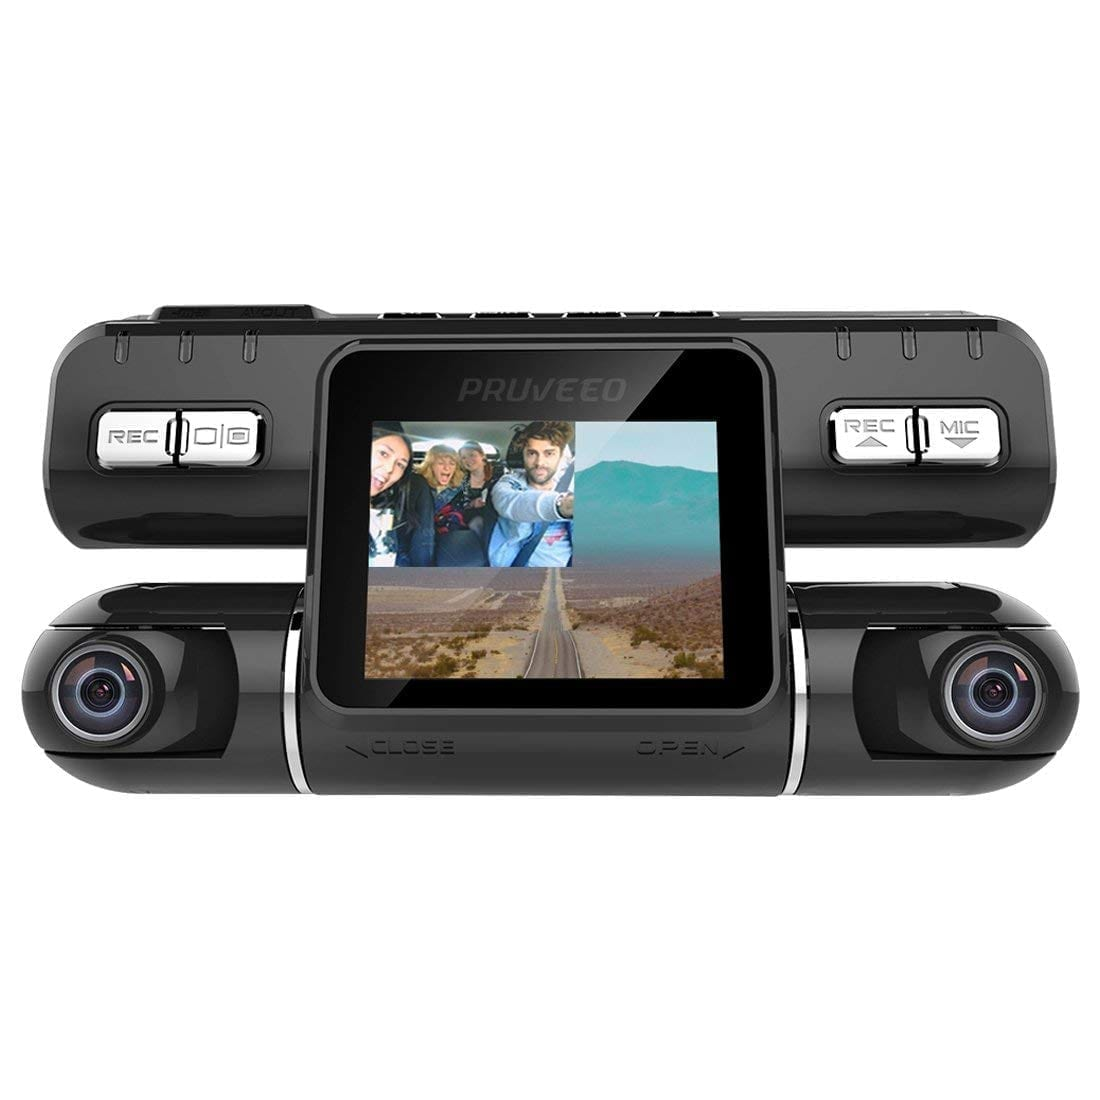 Pruveeo MX2 front and rear dash camera with 240o wide view angle